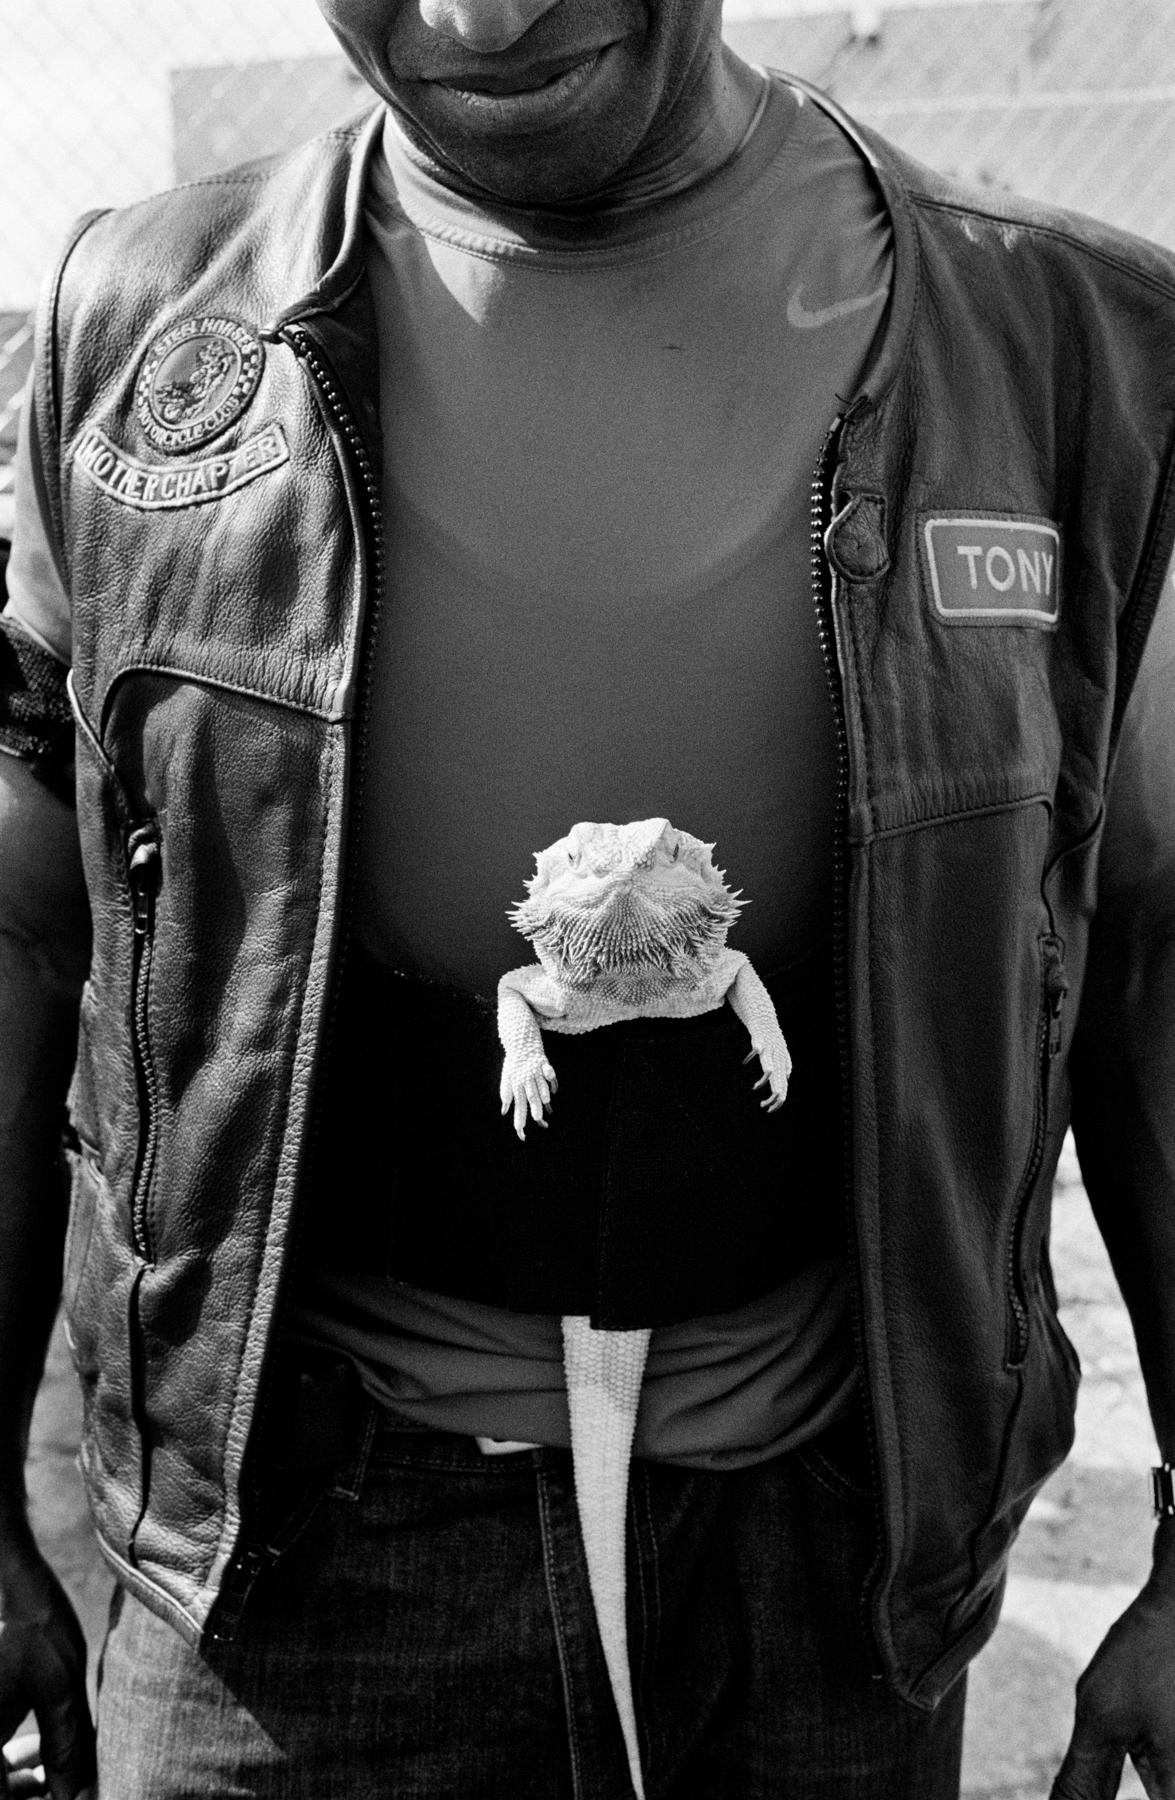 Tony of Steel Horses MC and Lizzy the bearded dragon about to ride out, The Bronx, 2016